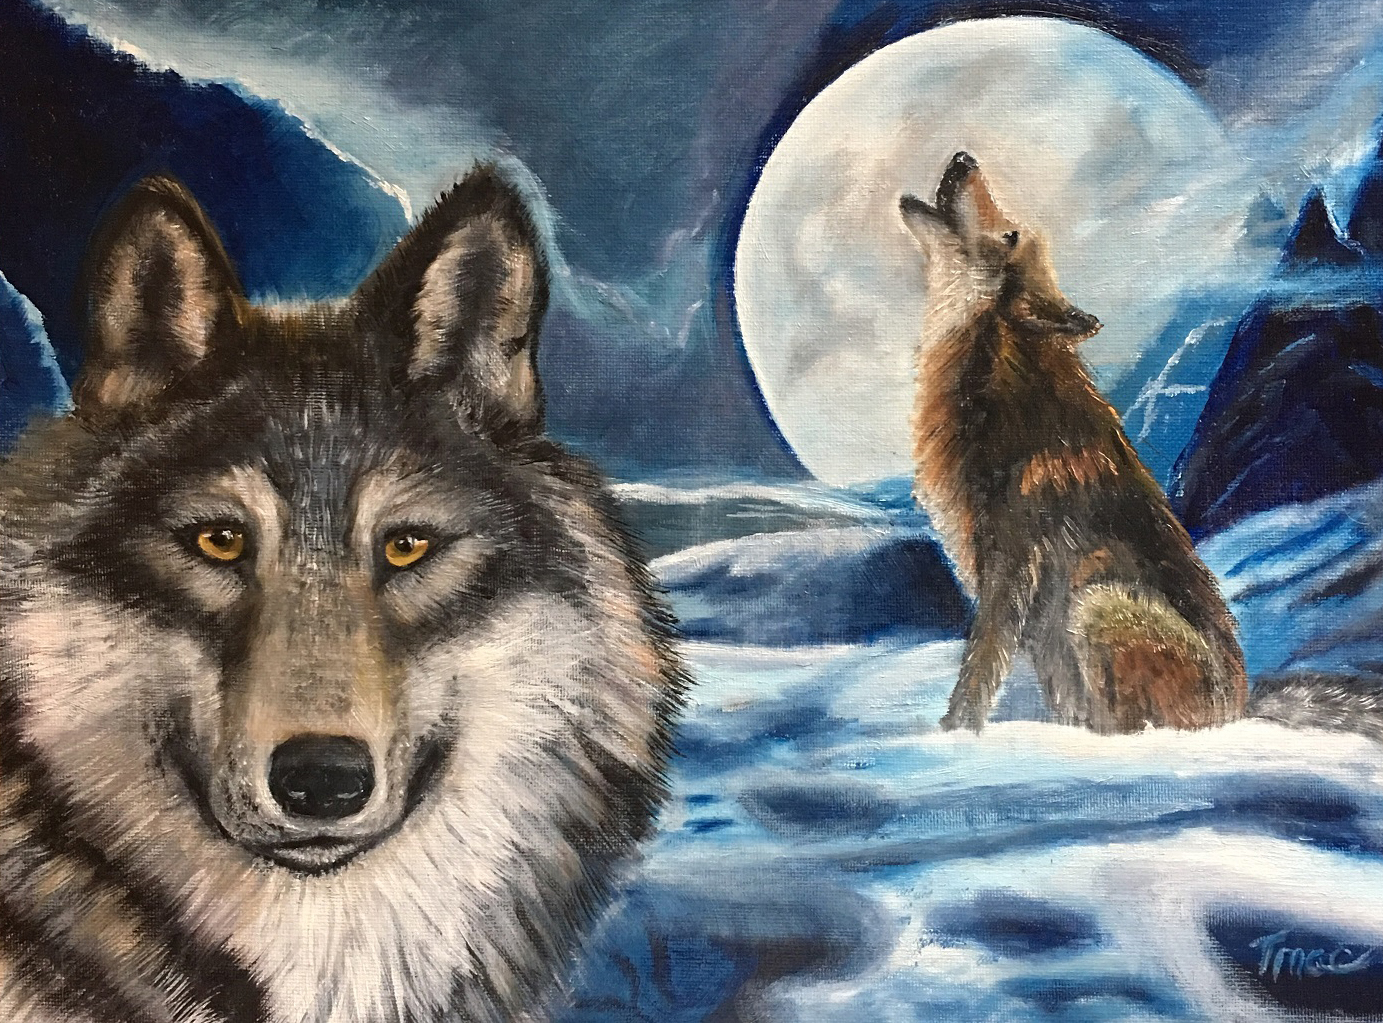 """""""Winter Wolf with Full Moon"""" by Teresa McCarthy, 18x24in, oil on canvas (2016)"""